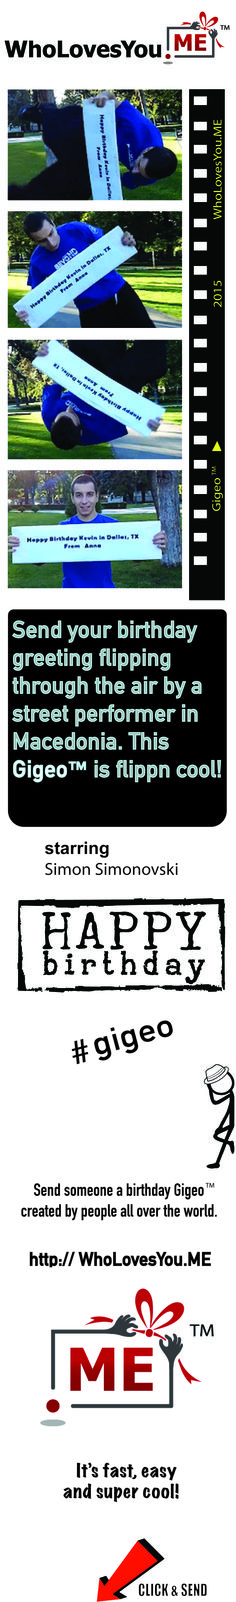 $8 | http://WhoLovesYou.ME   Send a flipping Happy Birthday Gigeo®  message that will challenge any aspiring athlete. In this unusual act of acrobatic skill, SimonBeyond, a parkour and freerunning instructor from Macedonia, executes a complete side flip while holding a personalized message from you to your birthday boy or girl.  #gigeo  http://WhoLovesYou.ME